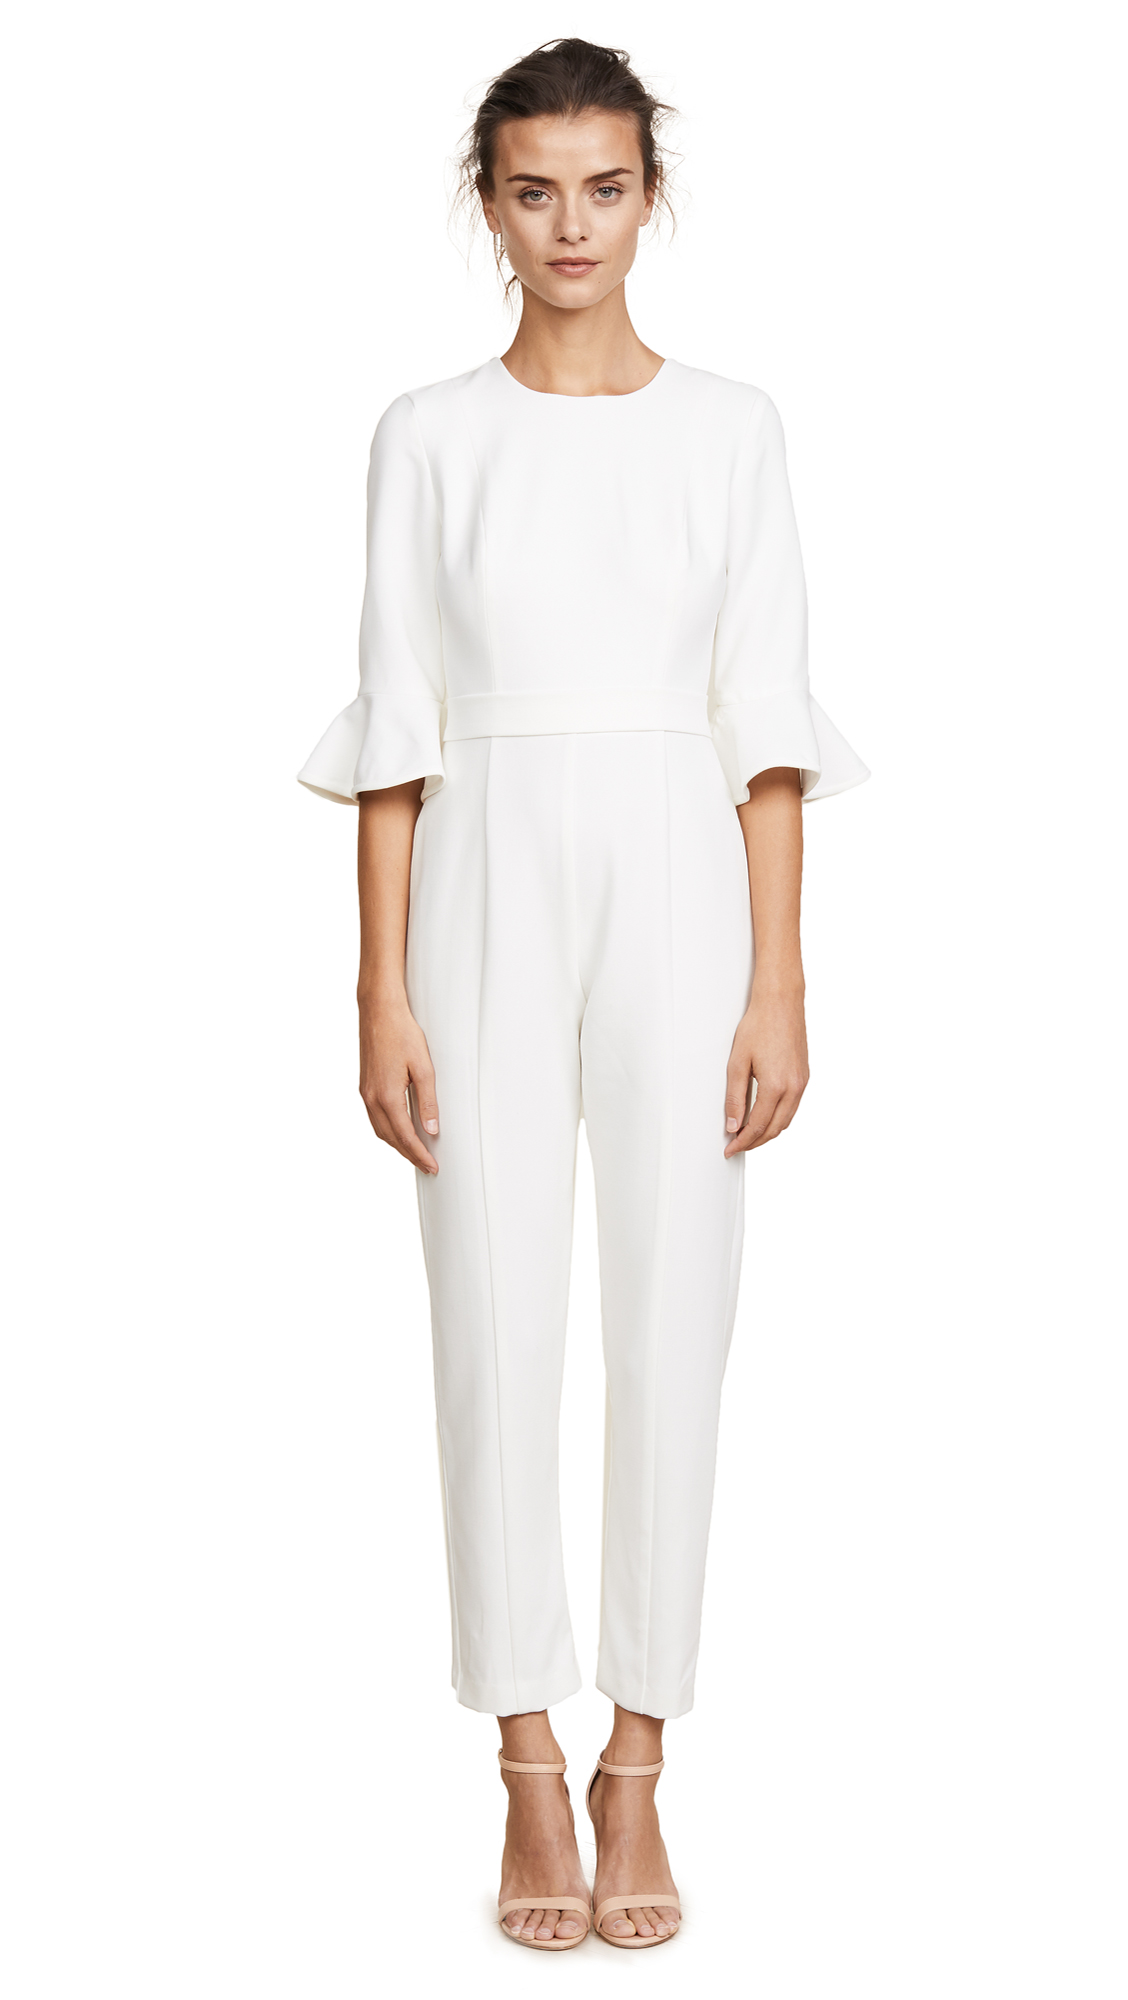 8c1e17cb68da Black Halo Brooklyn Jumpsuit - White - Designer Jumpsuit Shop.com